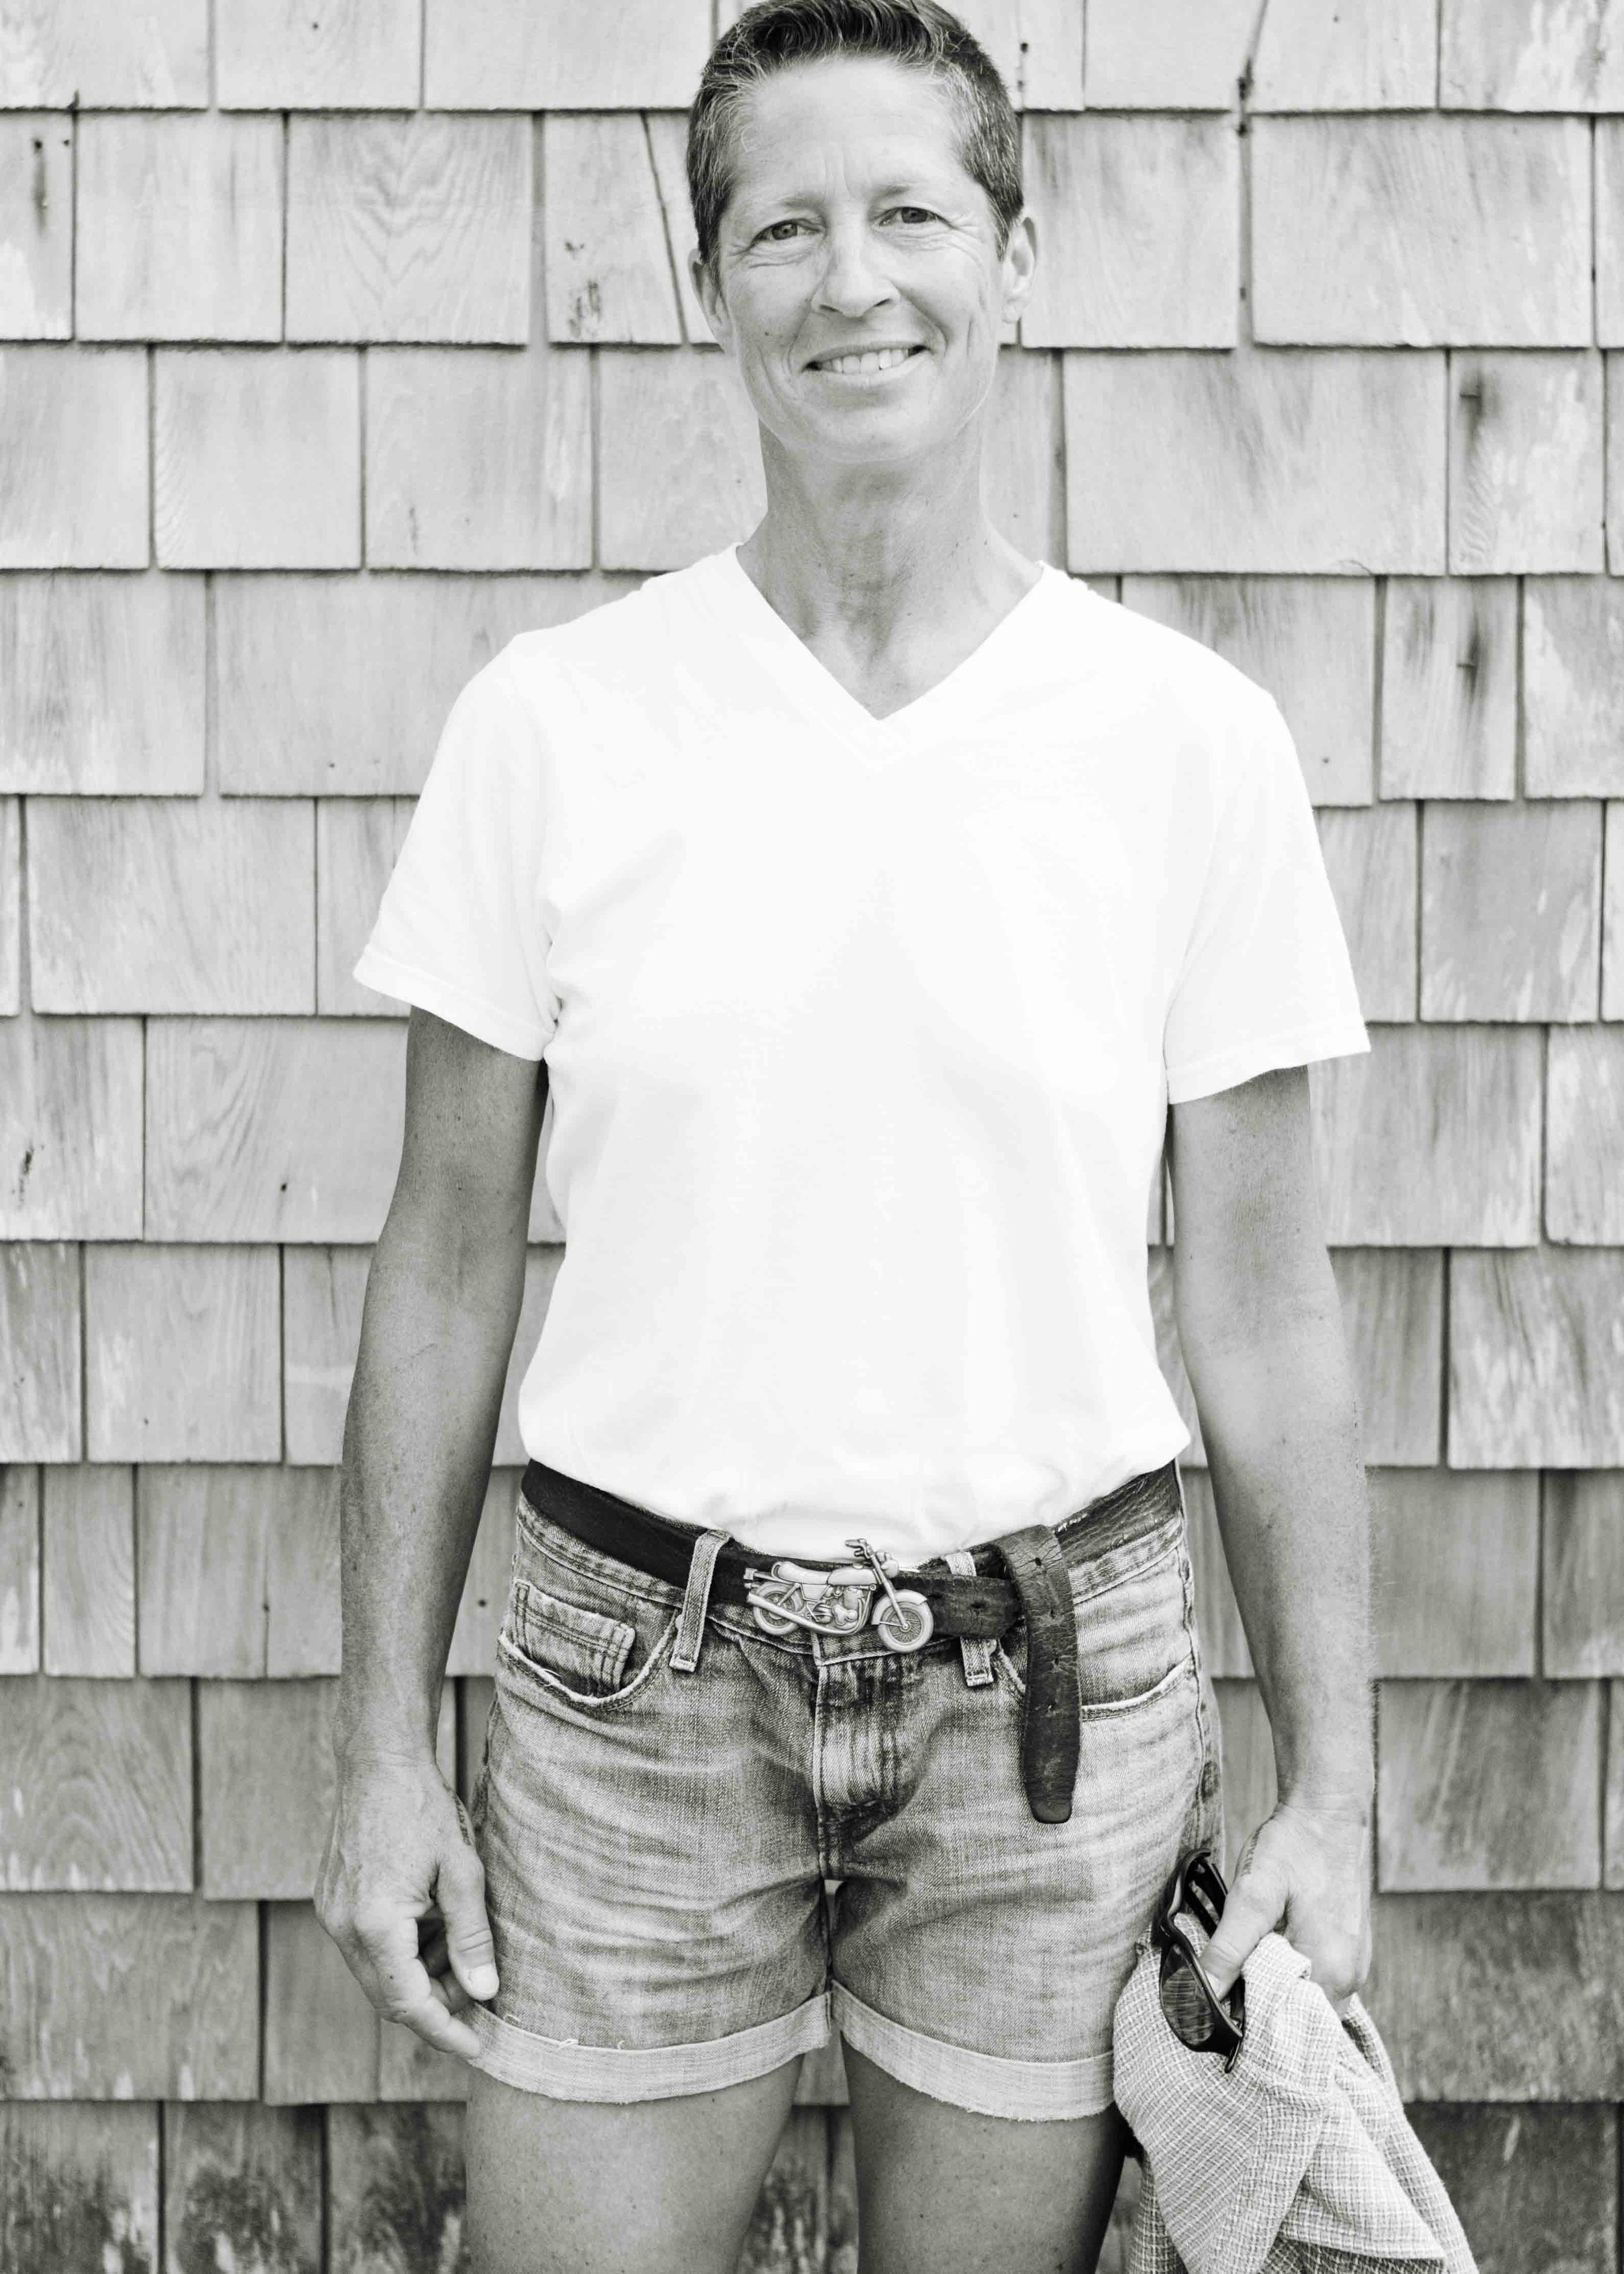 EDC_Portraits_In_Provincetown_2016_07_117 copy.jpg